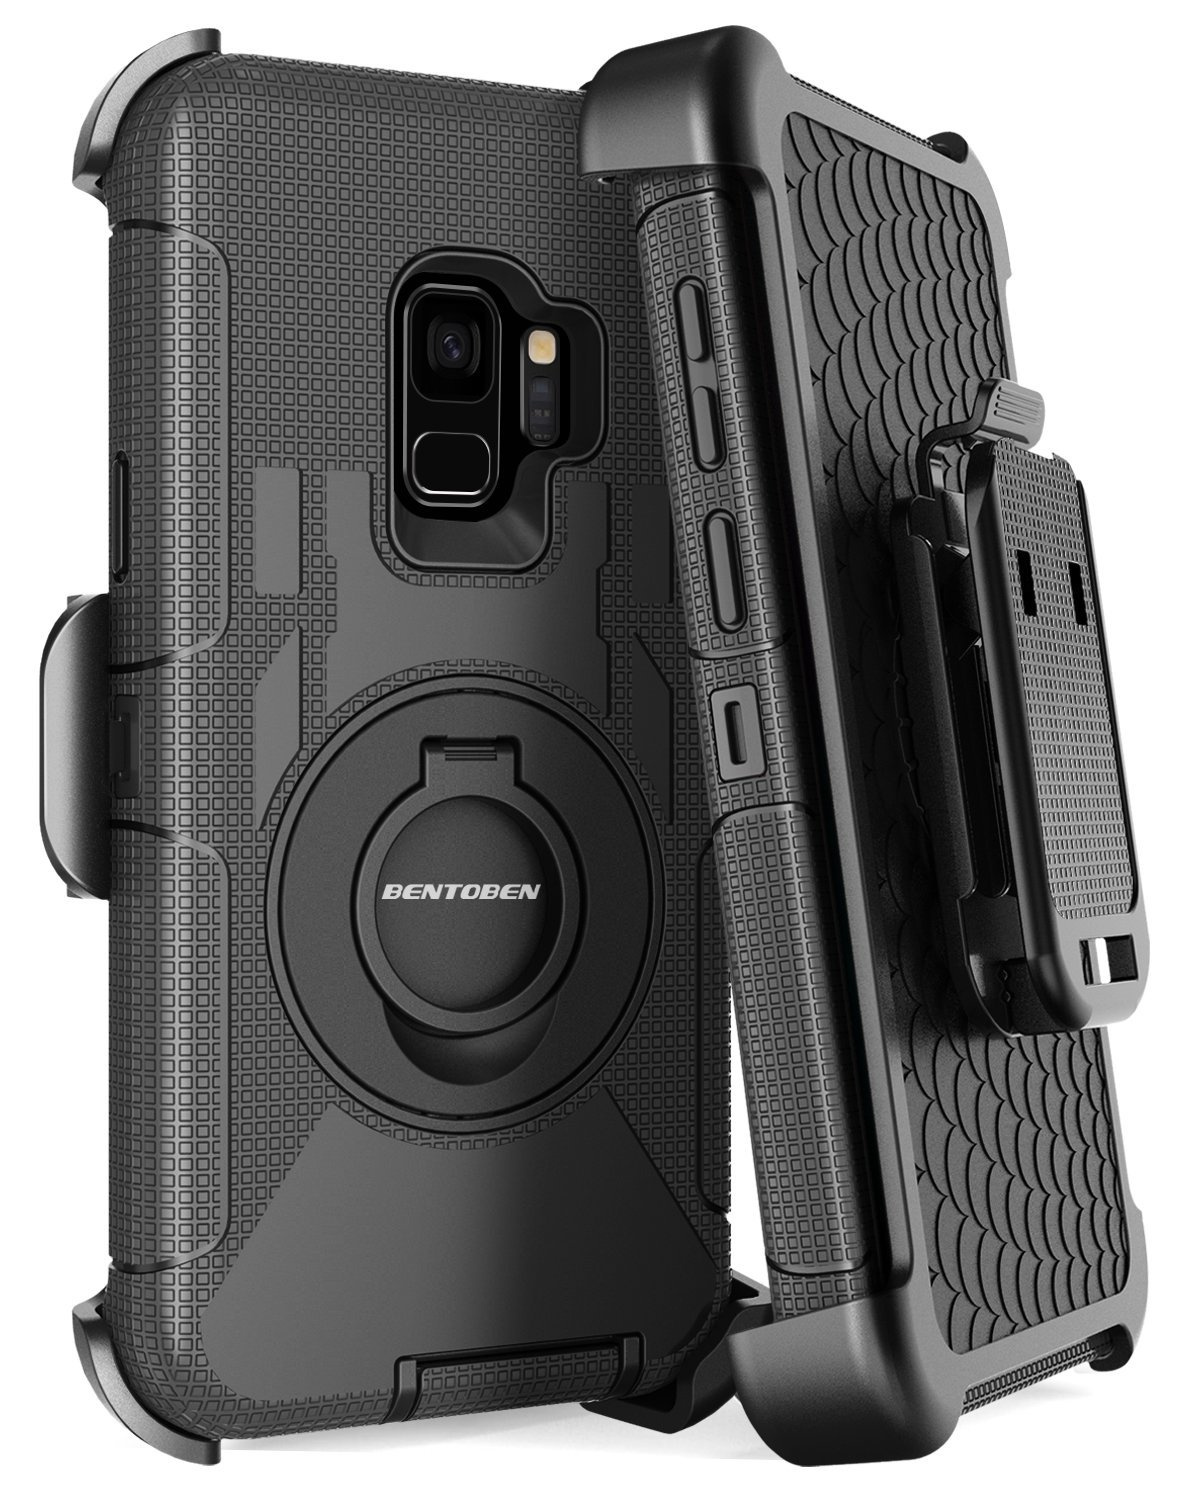 Galaxy S9 Case,Samsung S9 Case,BENTOBEN Heavy Duty Shockproof Kickstand Swivel Belt Clip Full Body Rugged Bumper Hybrid Holster Protective Tough Phone Case for Samsung Galaxy S9(2018 Released),Black